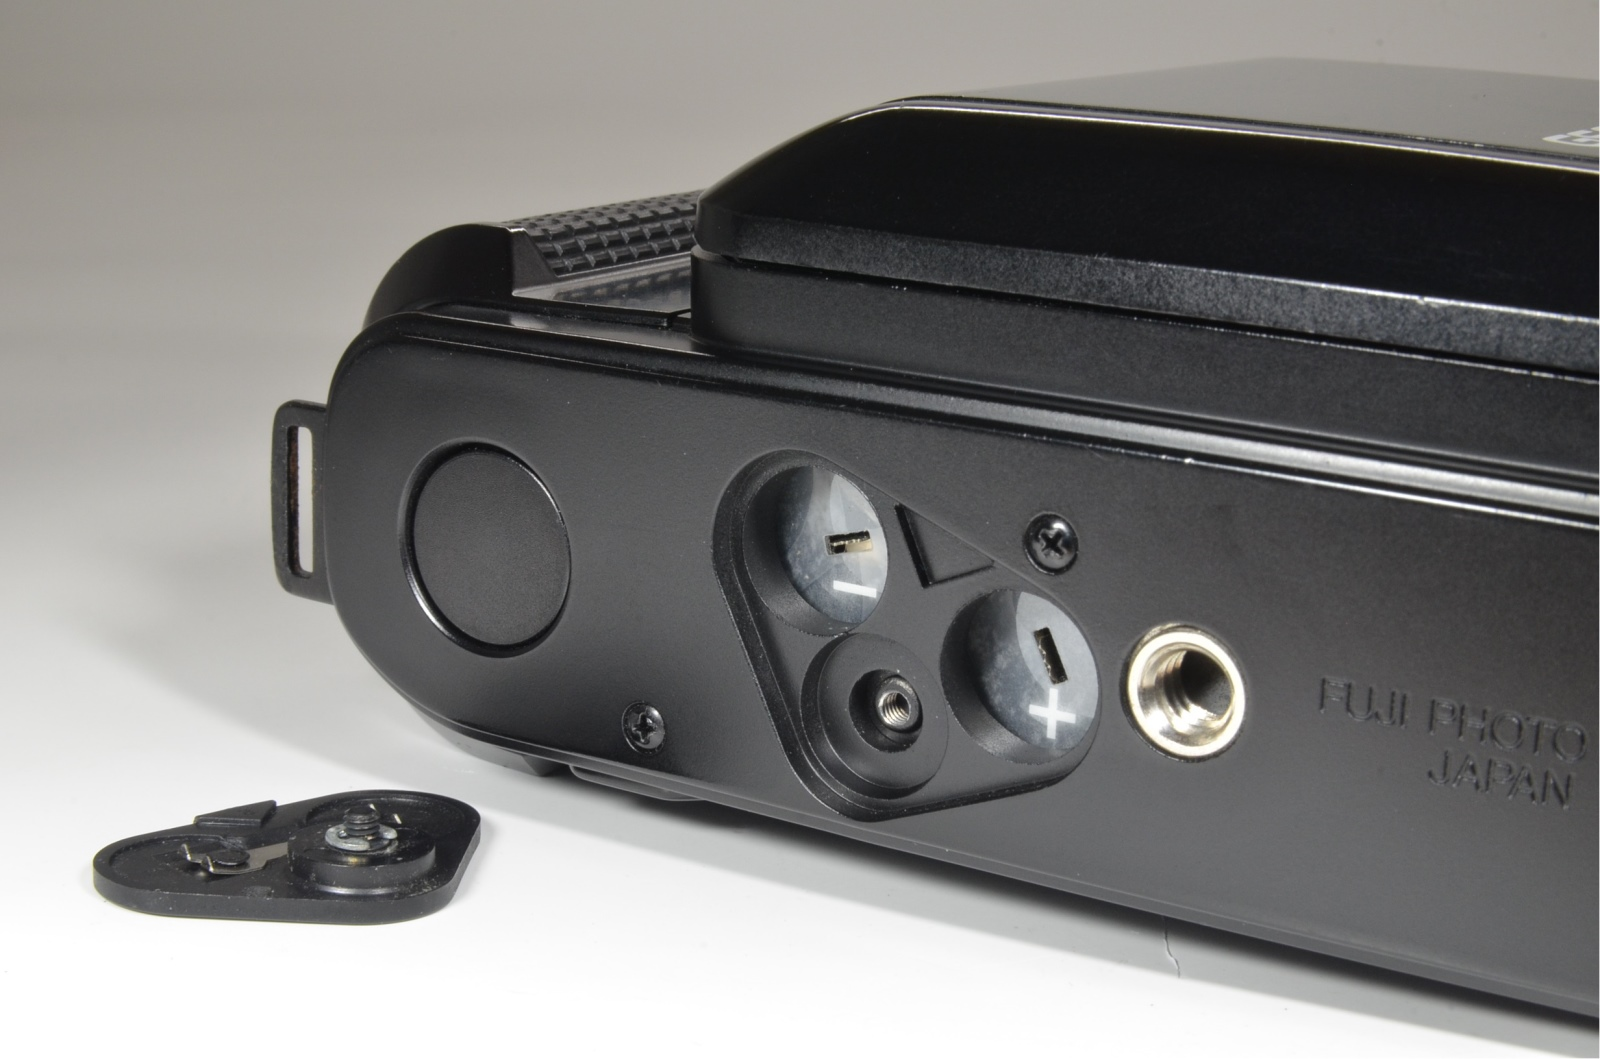 fujifilm fujica gs645 with lens hood and close-up finder set